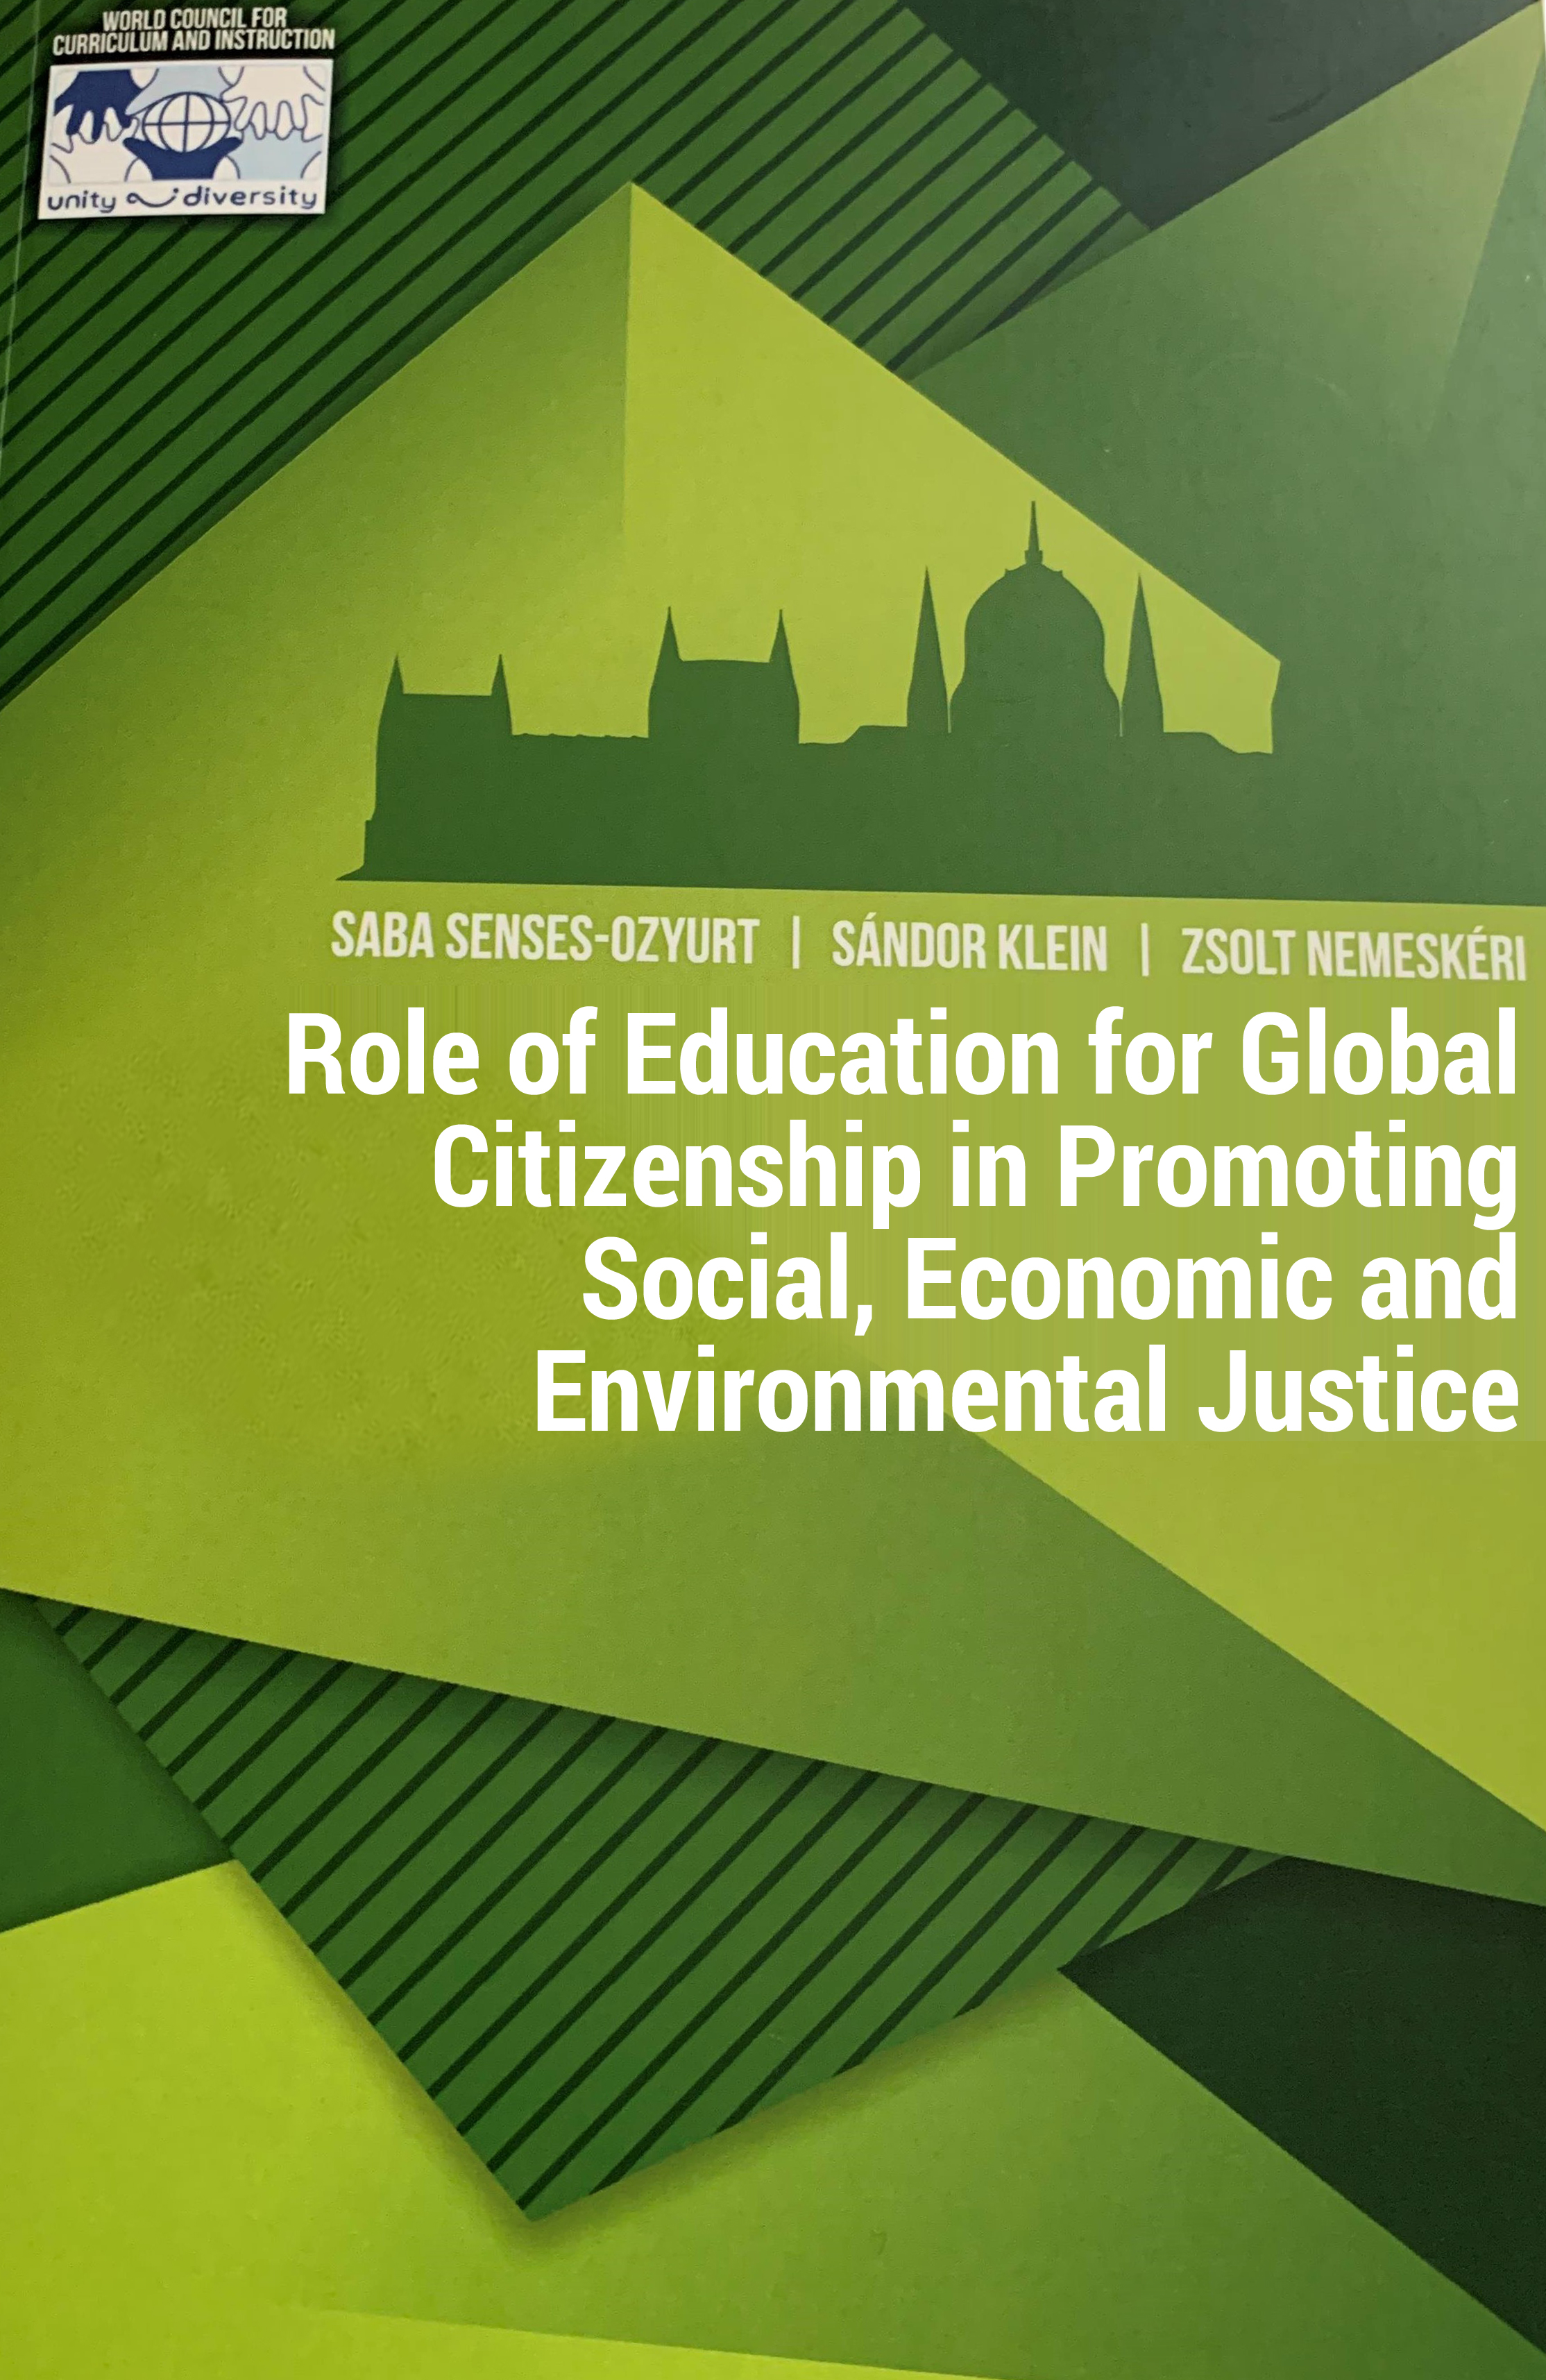 hungary-conference-role-education